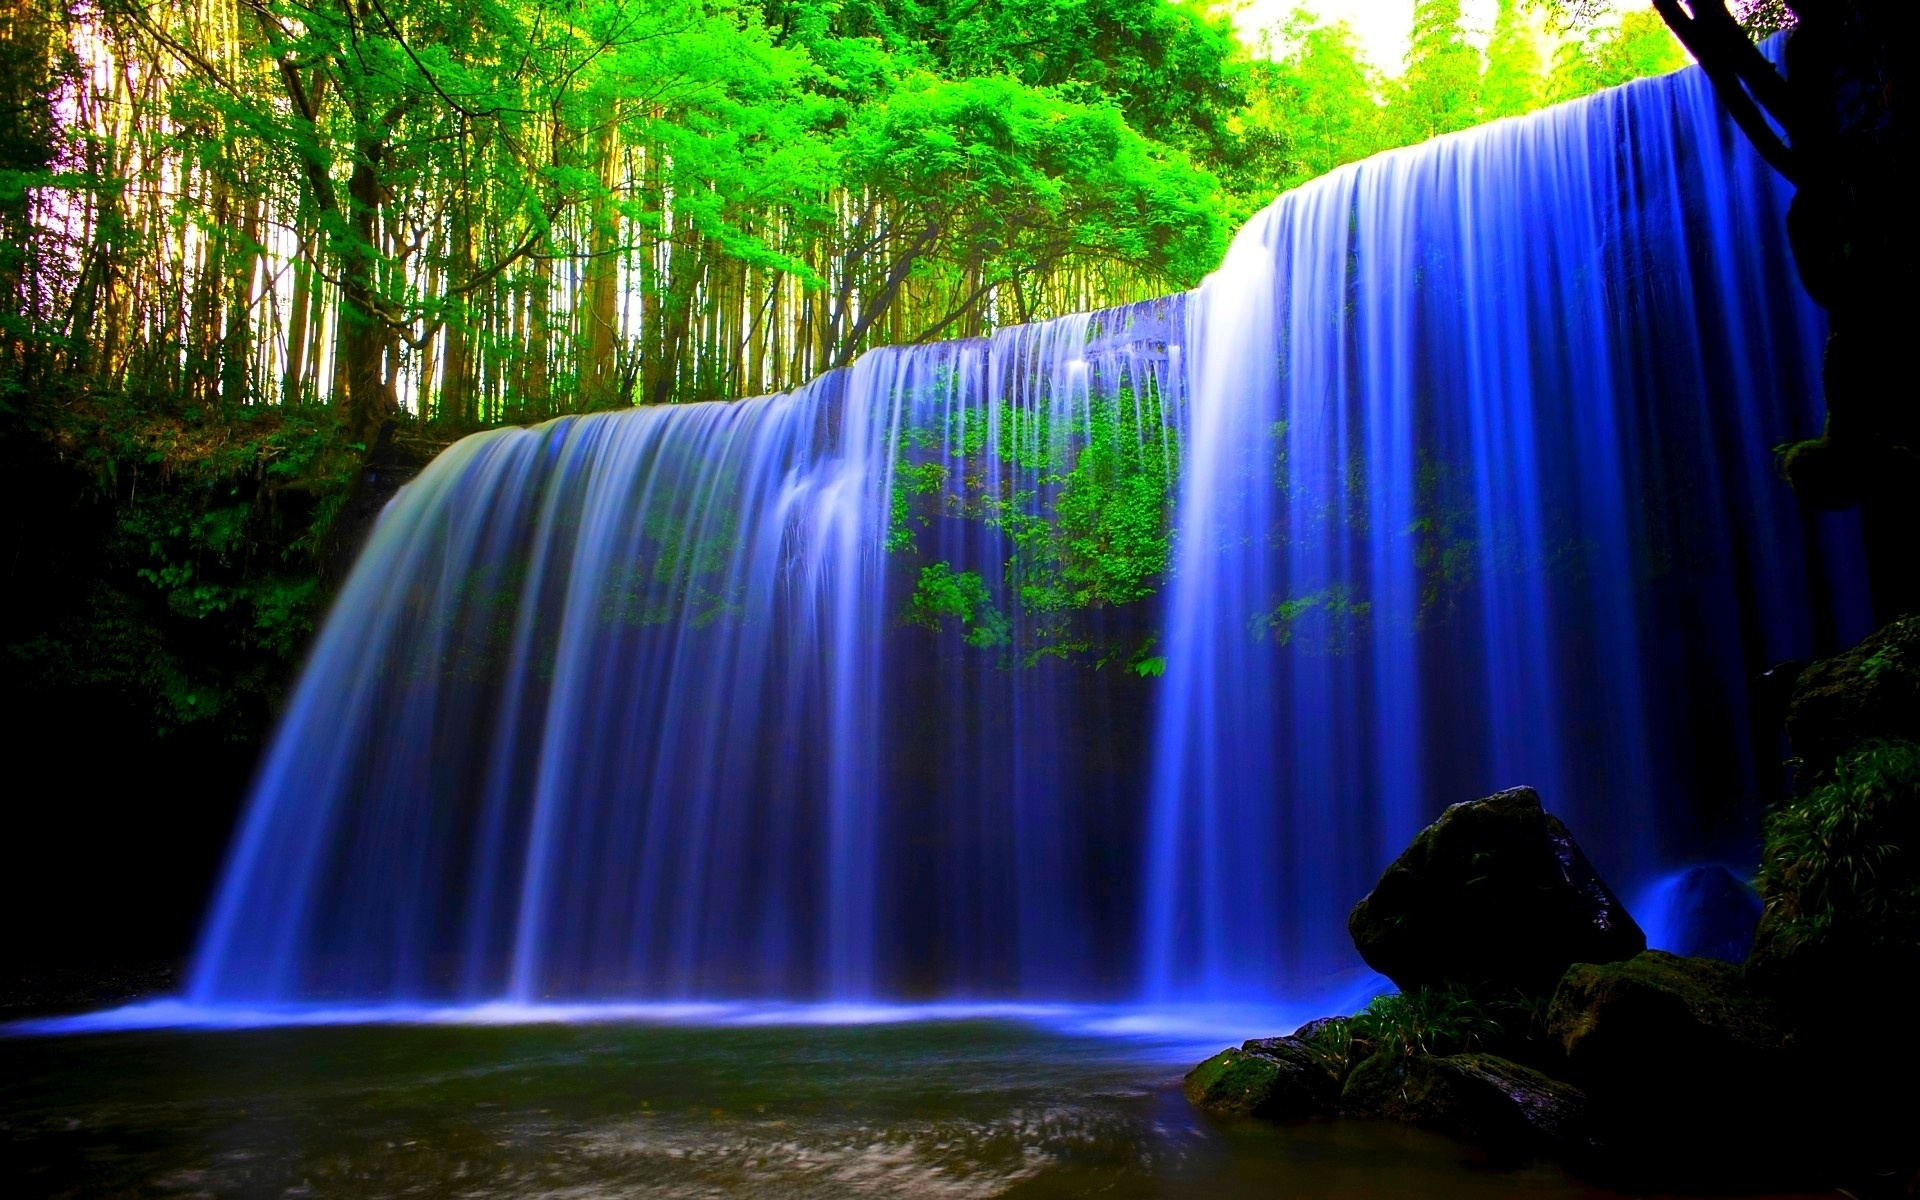 3d Waterfall Live Wallpaper Free Download For PcFree HD Live Wallpapers   WallpaperSafari. Forest Hd Live Wallpaper Free Apk. Home Design Ideas